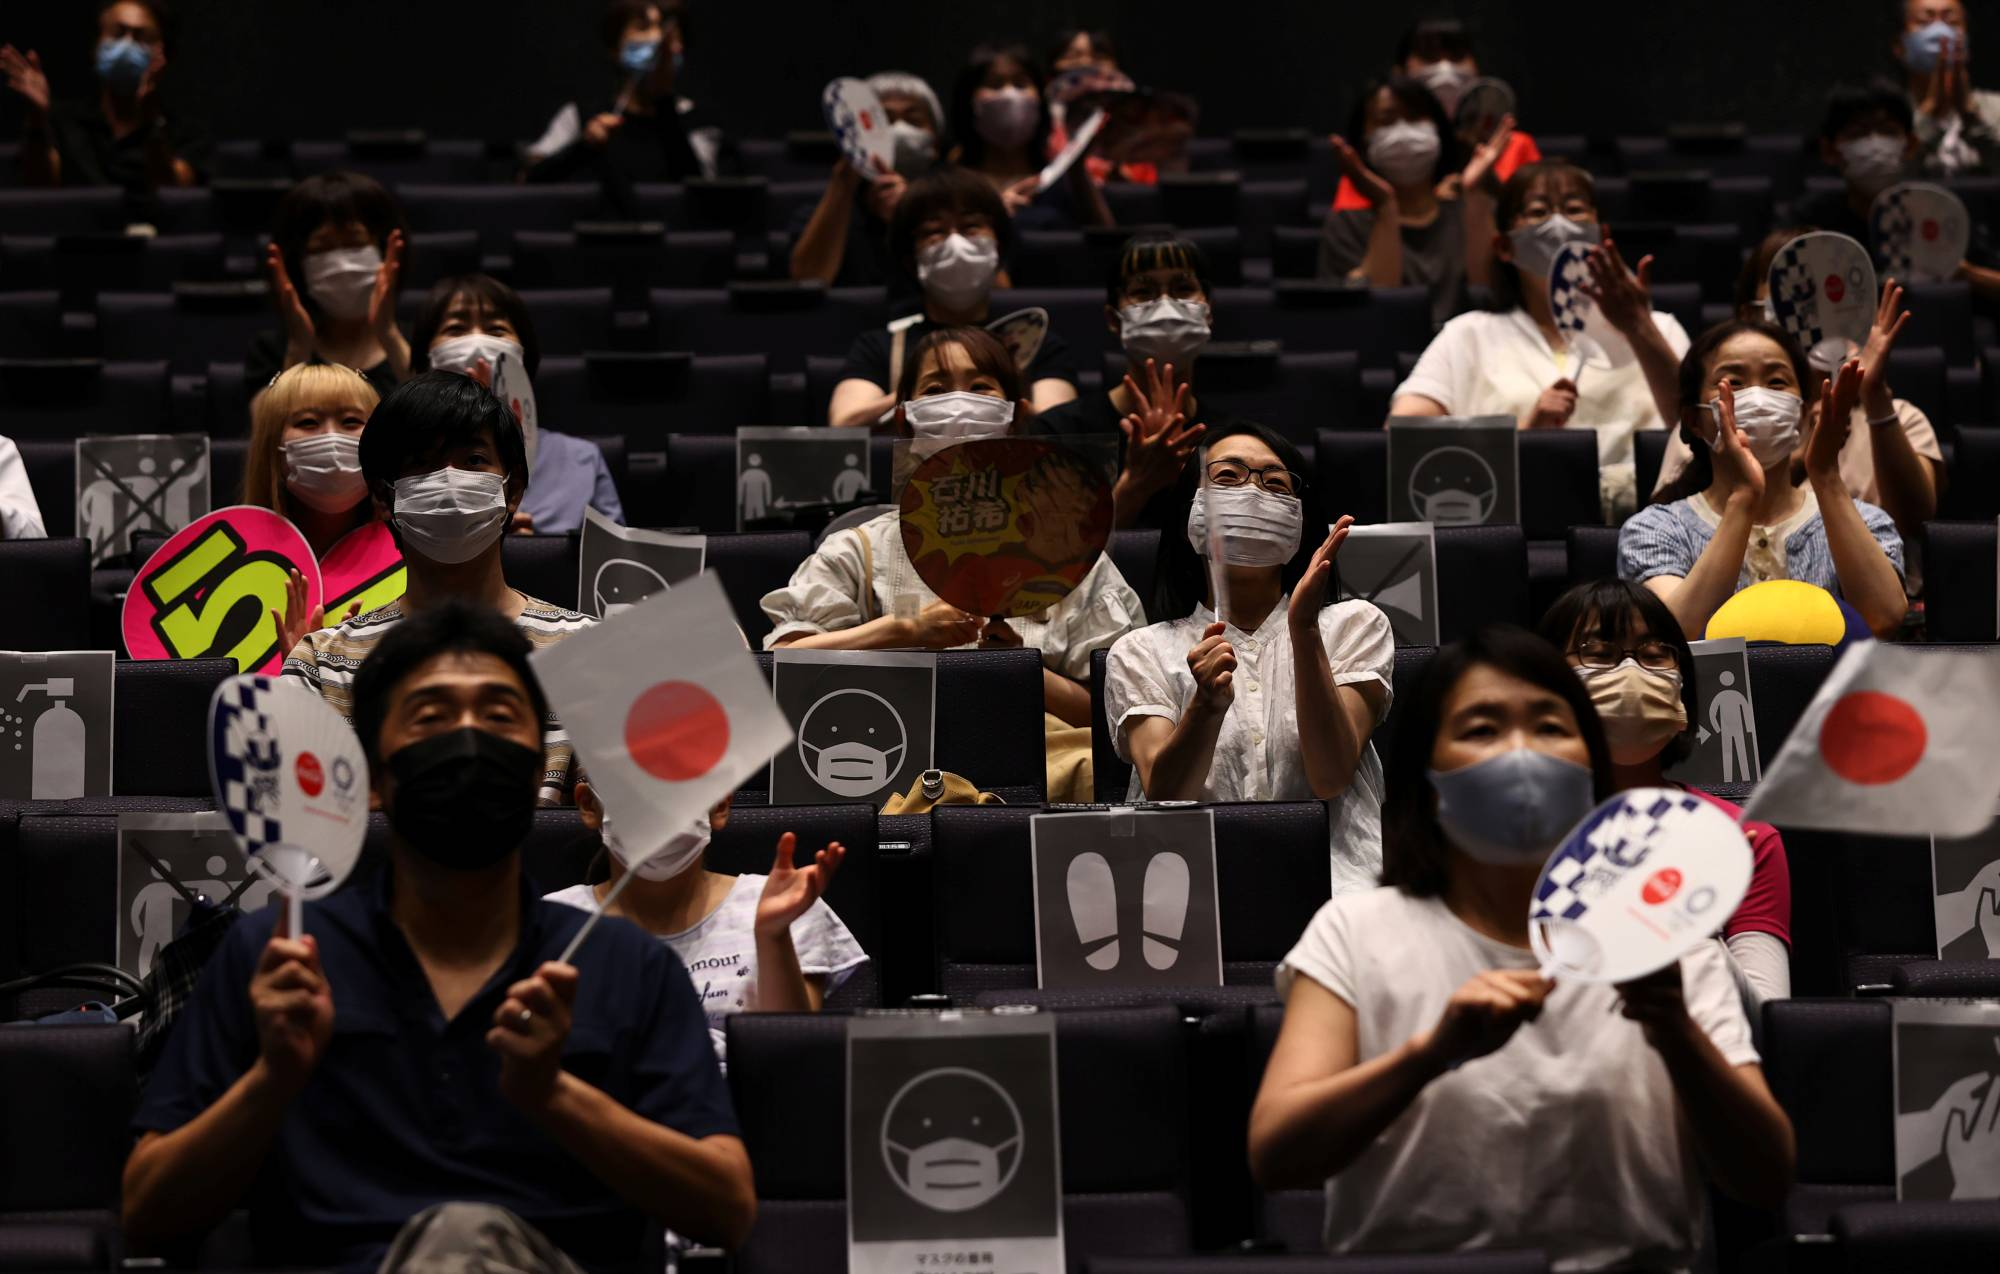 People watch a live broadcast of a volleyball match between Japan and Poland on a large screen during a public viewing event for the Tokyo Olympics at a theater in Takasaki, Gunma Prefecture, on Friday.   REUTERS